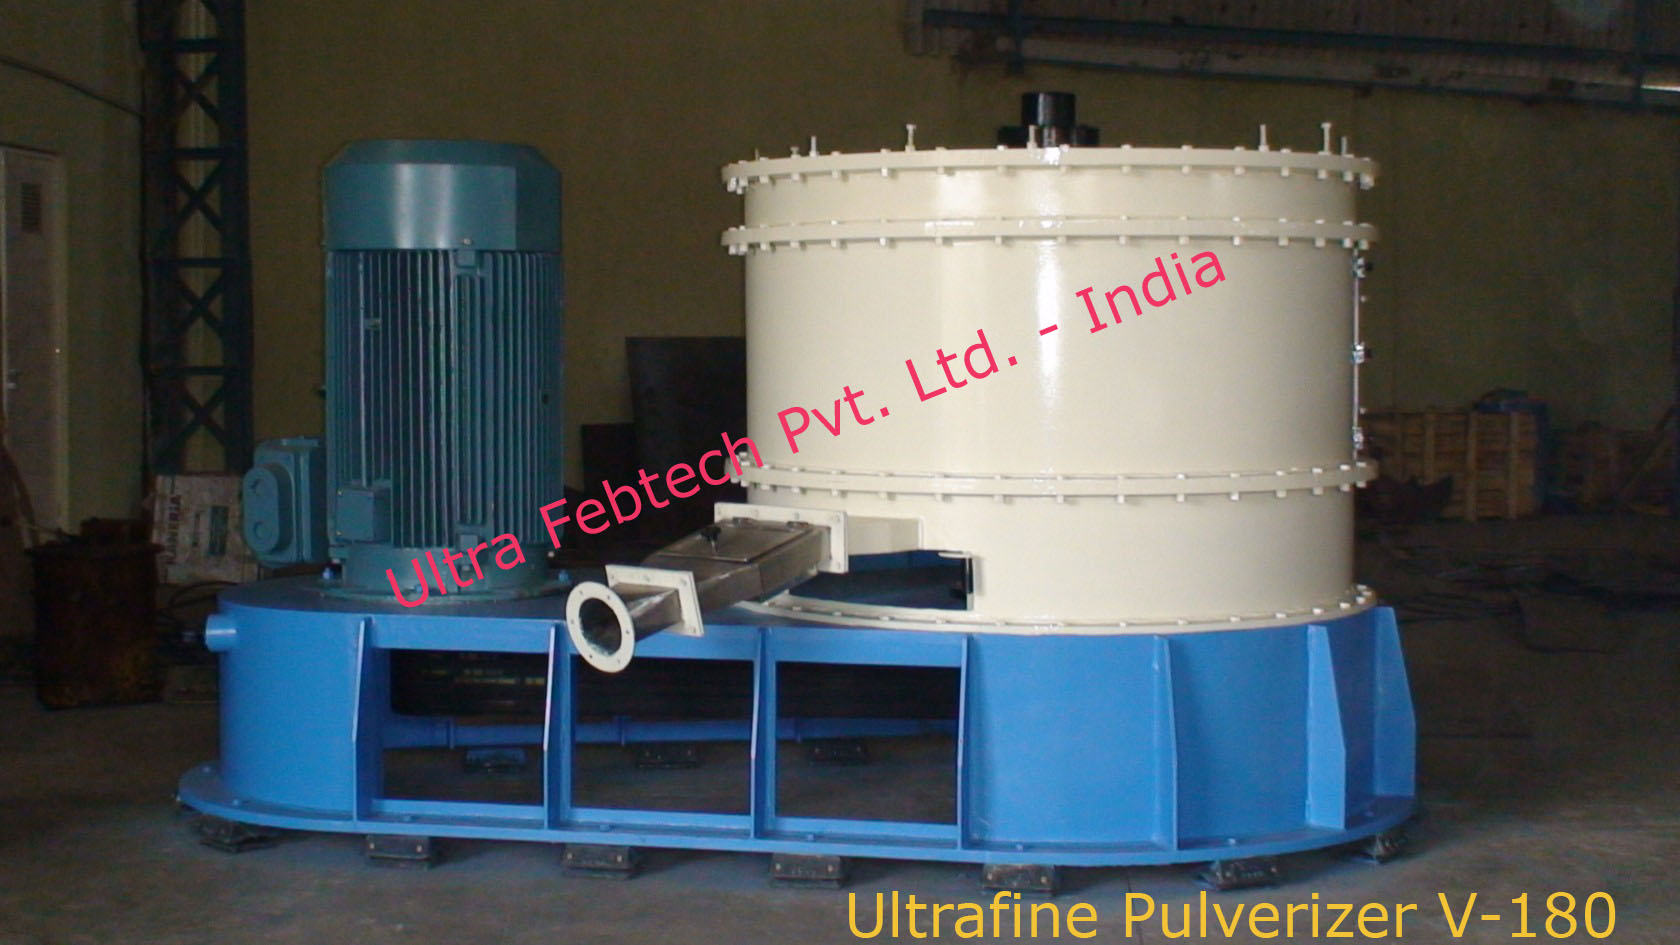 photo of Ultrafine Pulverizer